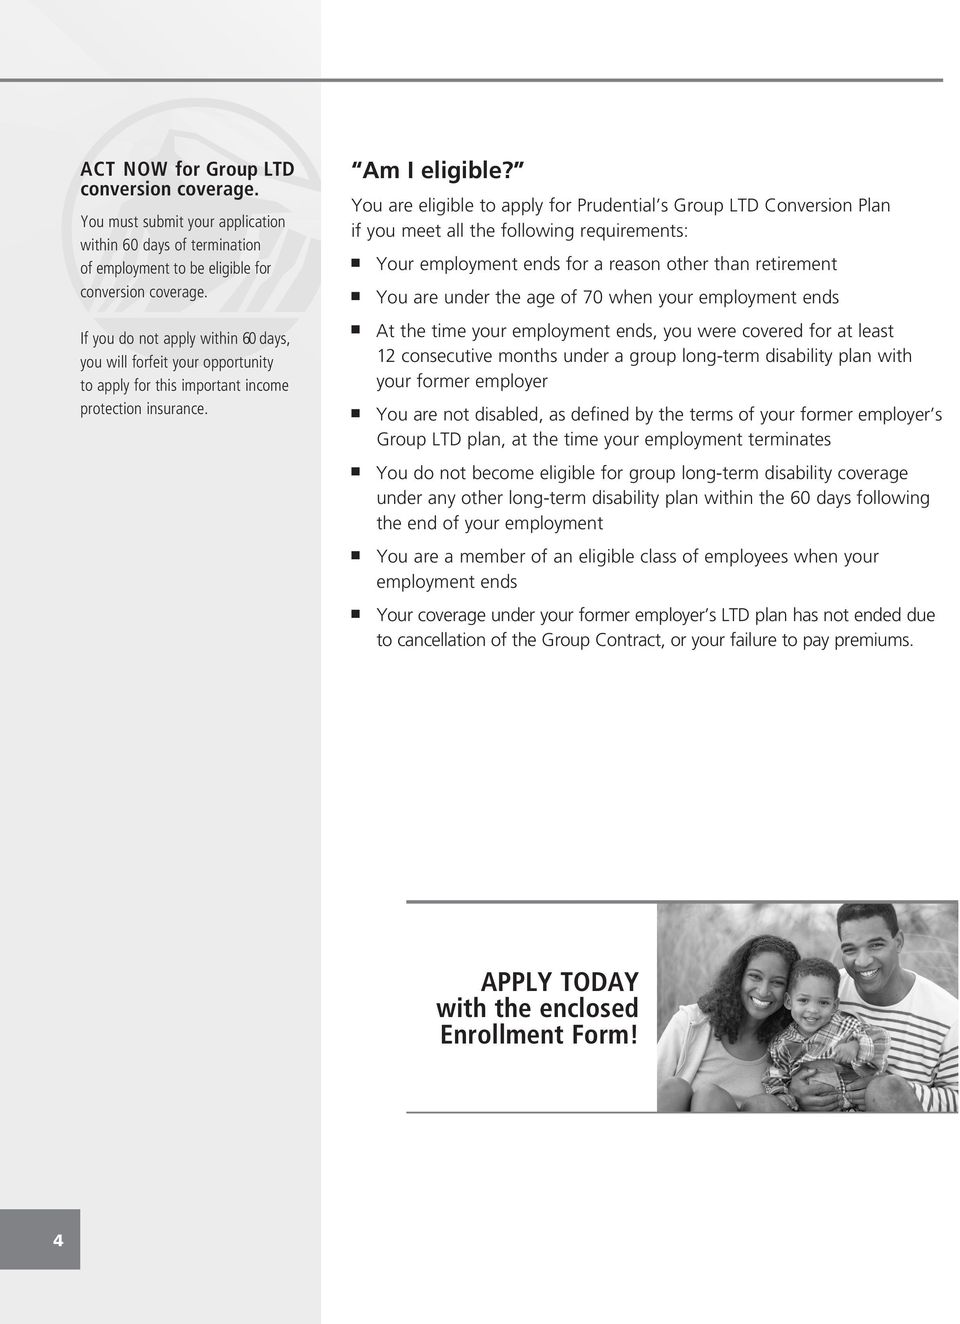 You are eligible to apply for Prudential s Group LTD Conversion Plan if you meet all the following requirements: n Your employment ends for a reason other than retirement n You are under the age of